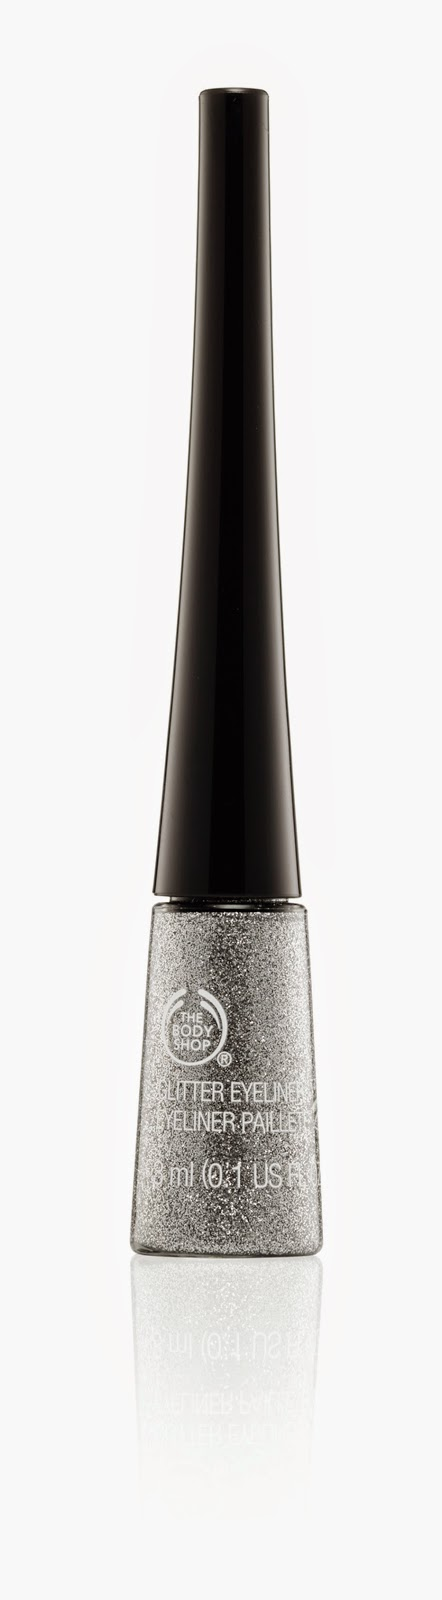 Must-Have Products This Christmas By The Body Shop - Liquid Eyeliner